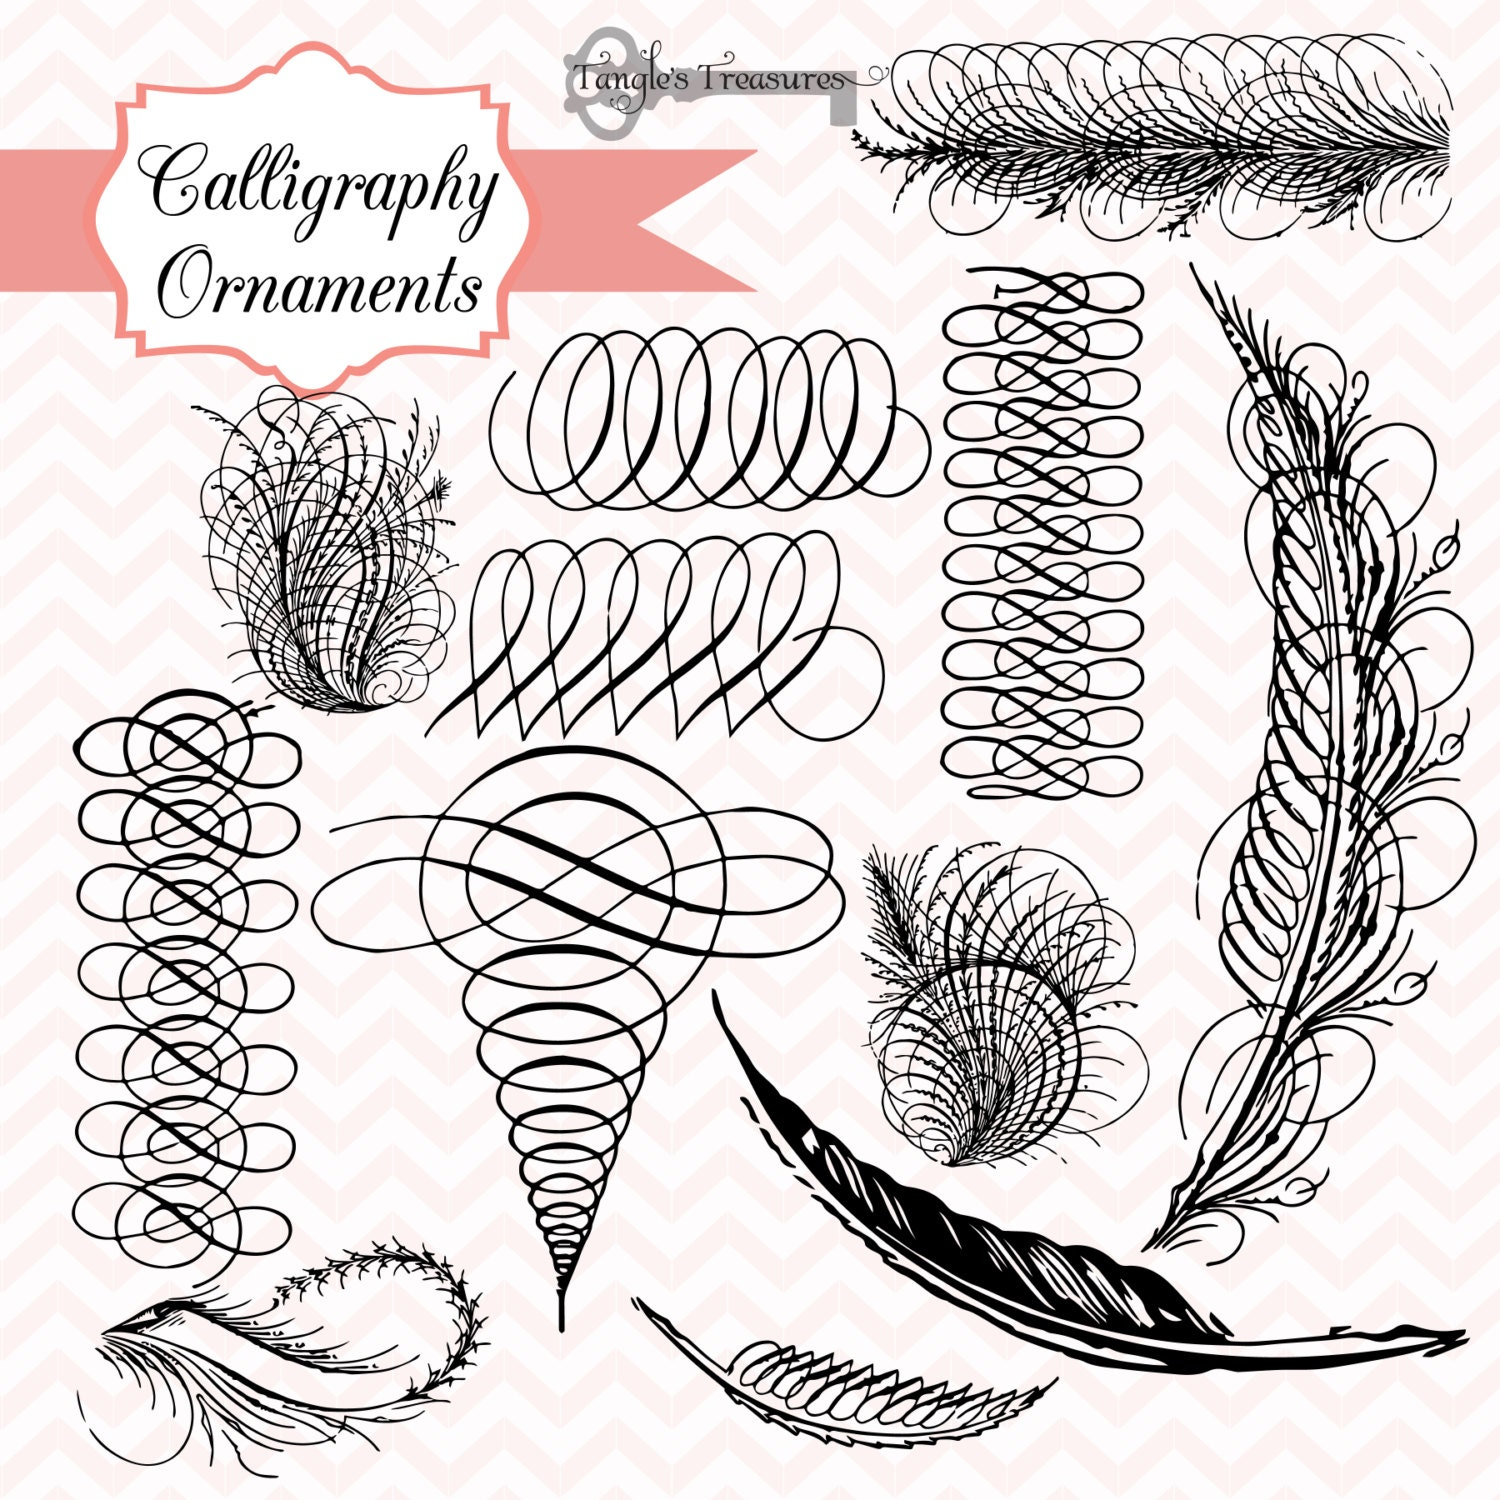 Antique Calligraphy: Vintage Calligraphy Ornaments Digital Clip Art By